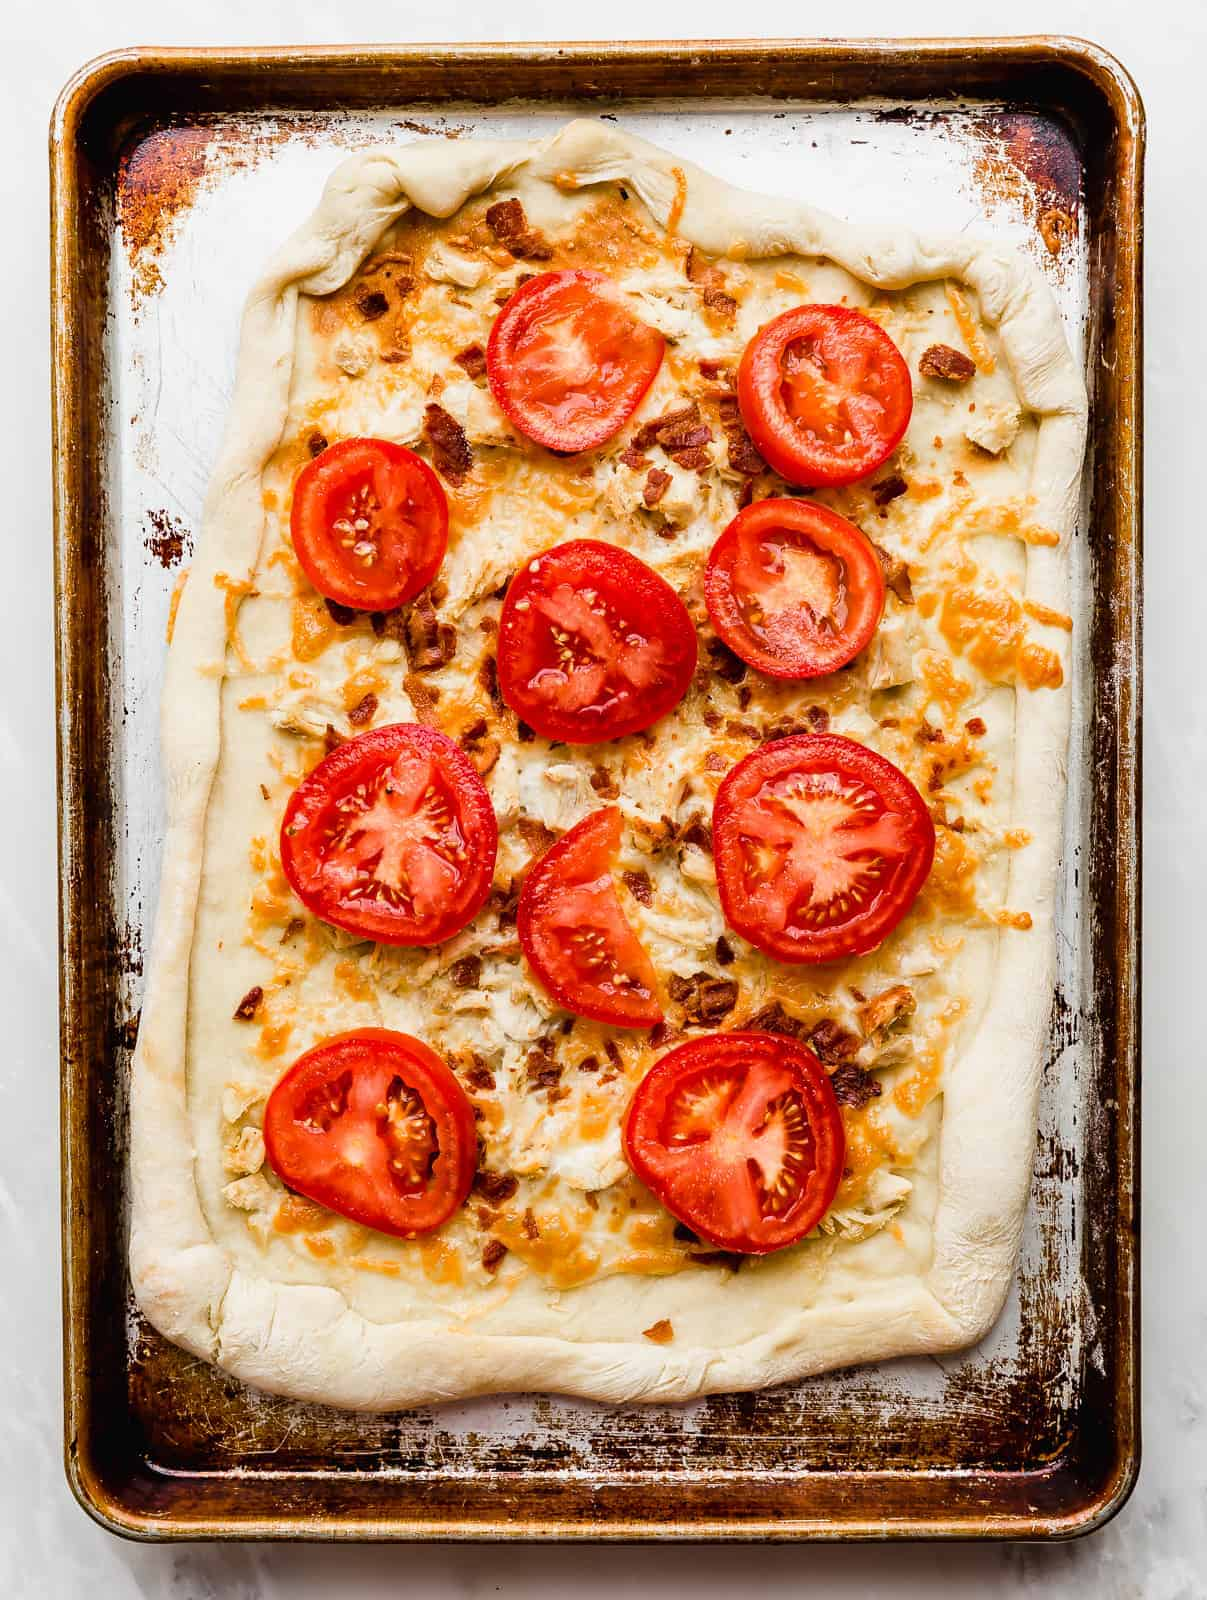 Tomato slices on top of a rectangular baked pizza dough.